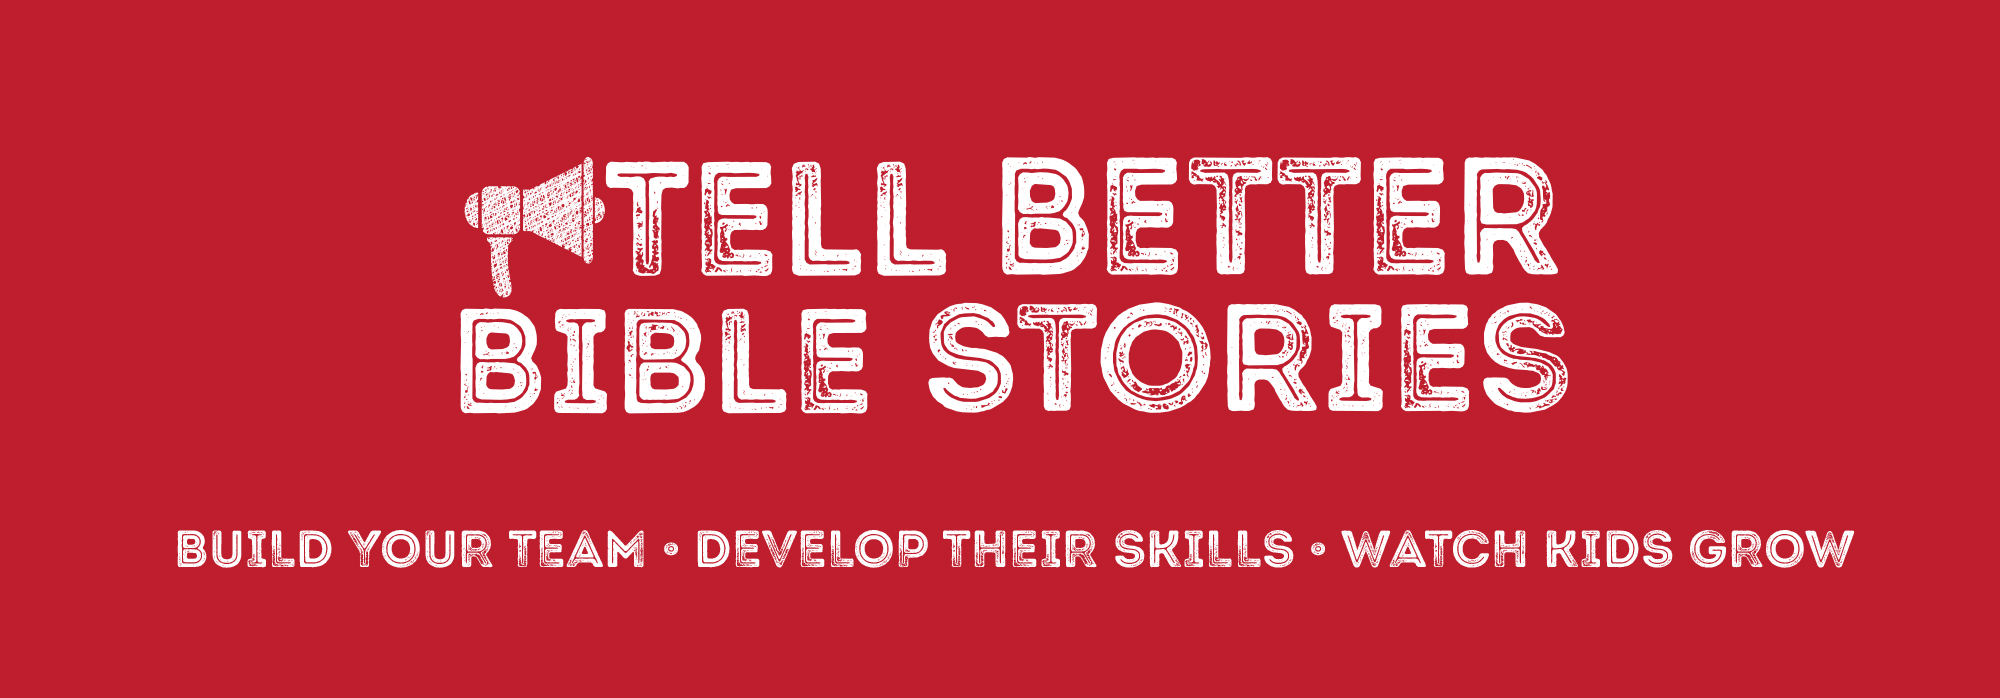 Tell Better Bible Stories Promo